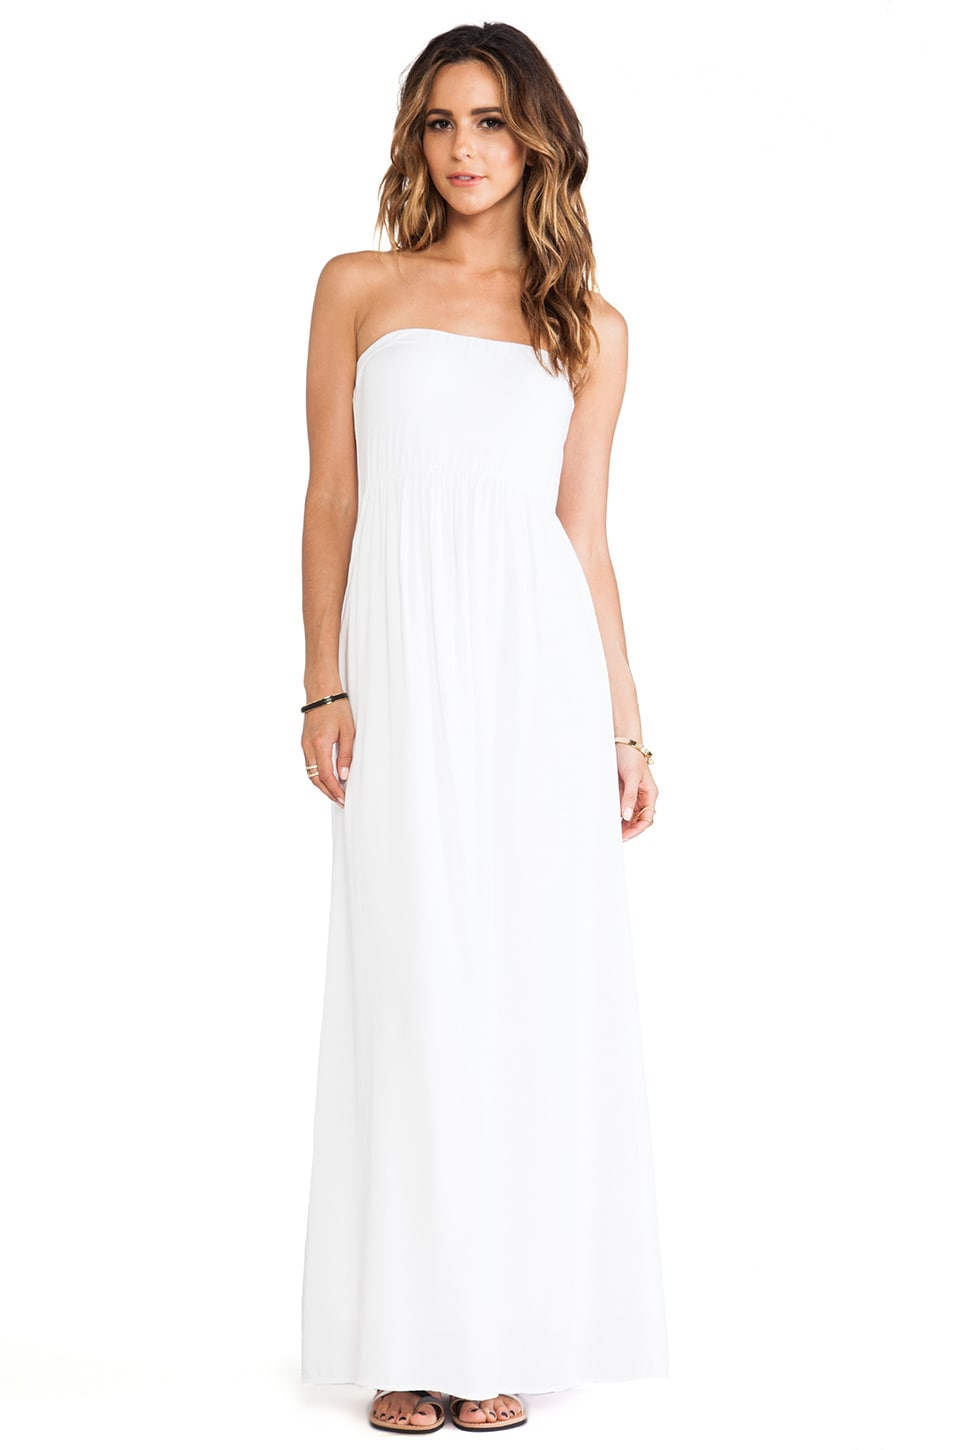 Splendid Strapless Maxi Dress in White